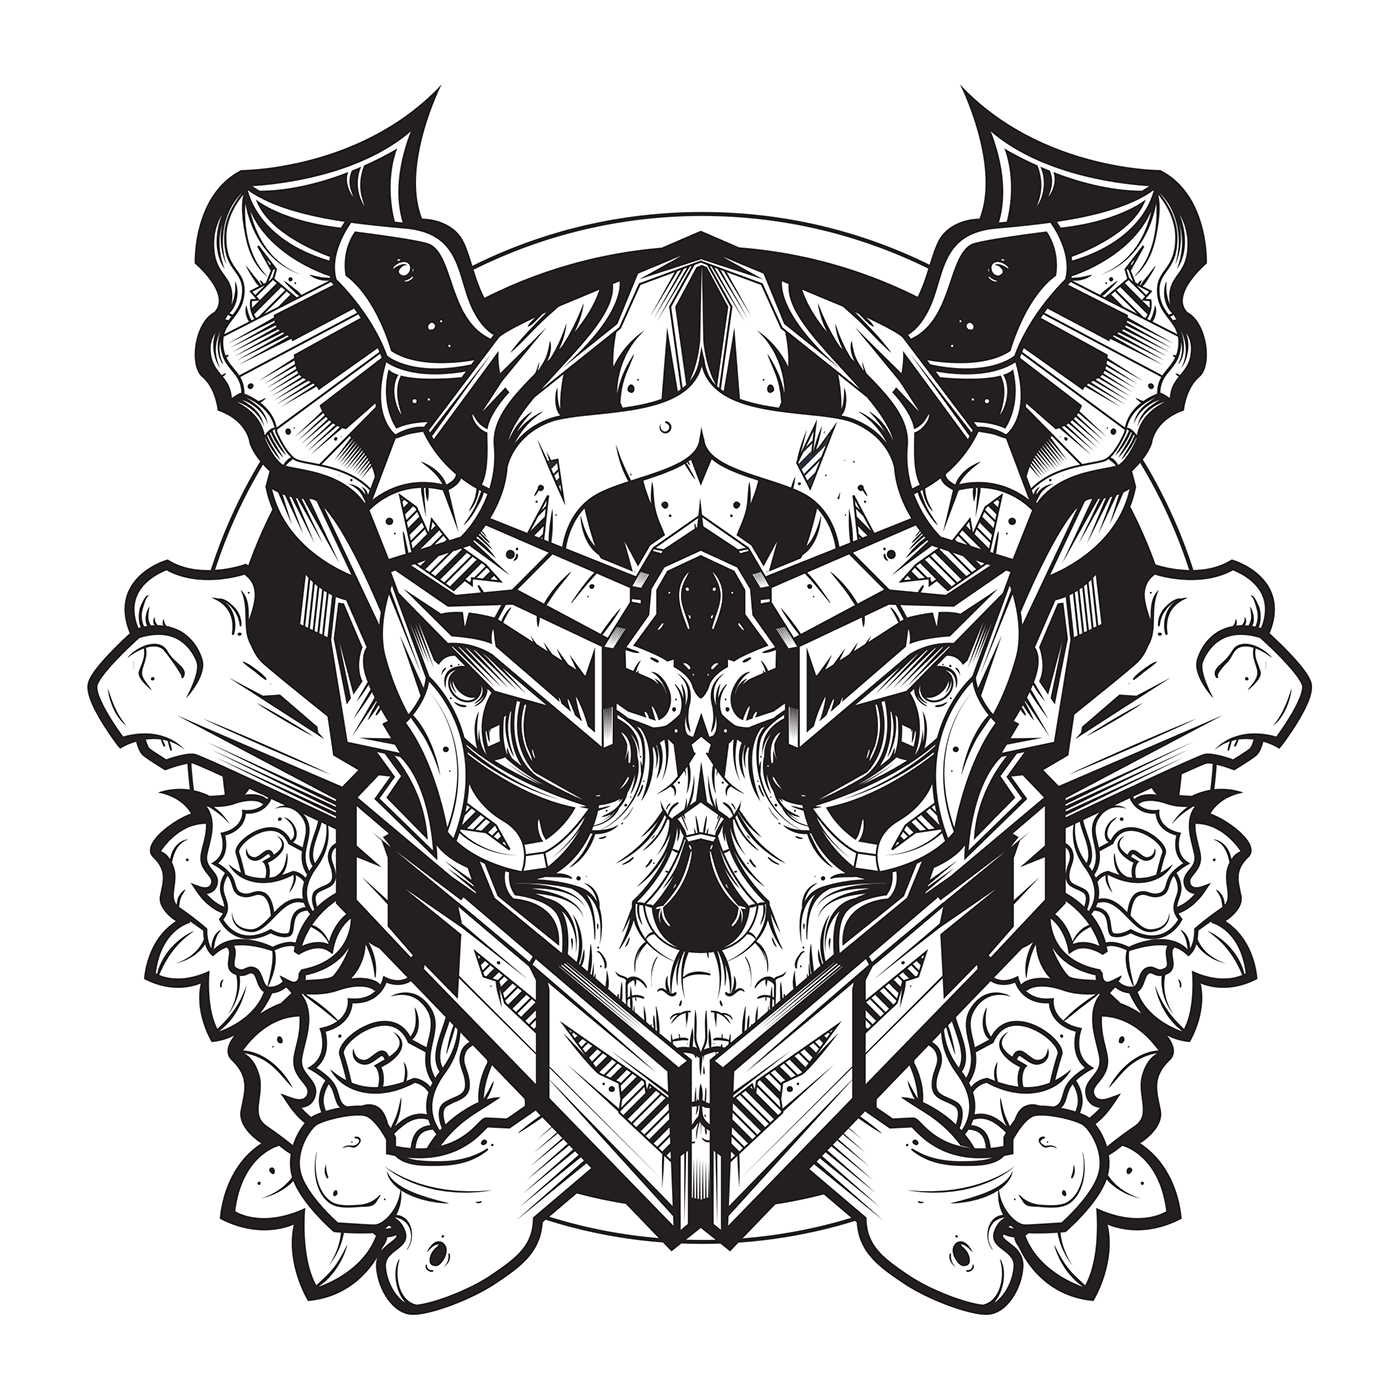 Destiny warlock on behance the design is made for destiny youtuber and twitch streamer smileb4death the briefing of this was really short mix up a warlock helmet with a skull biocorpaavc Gallery